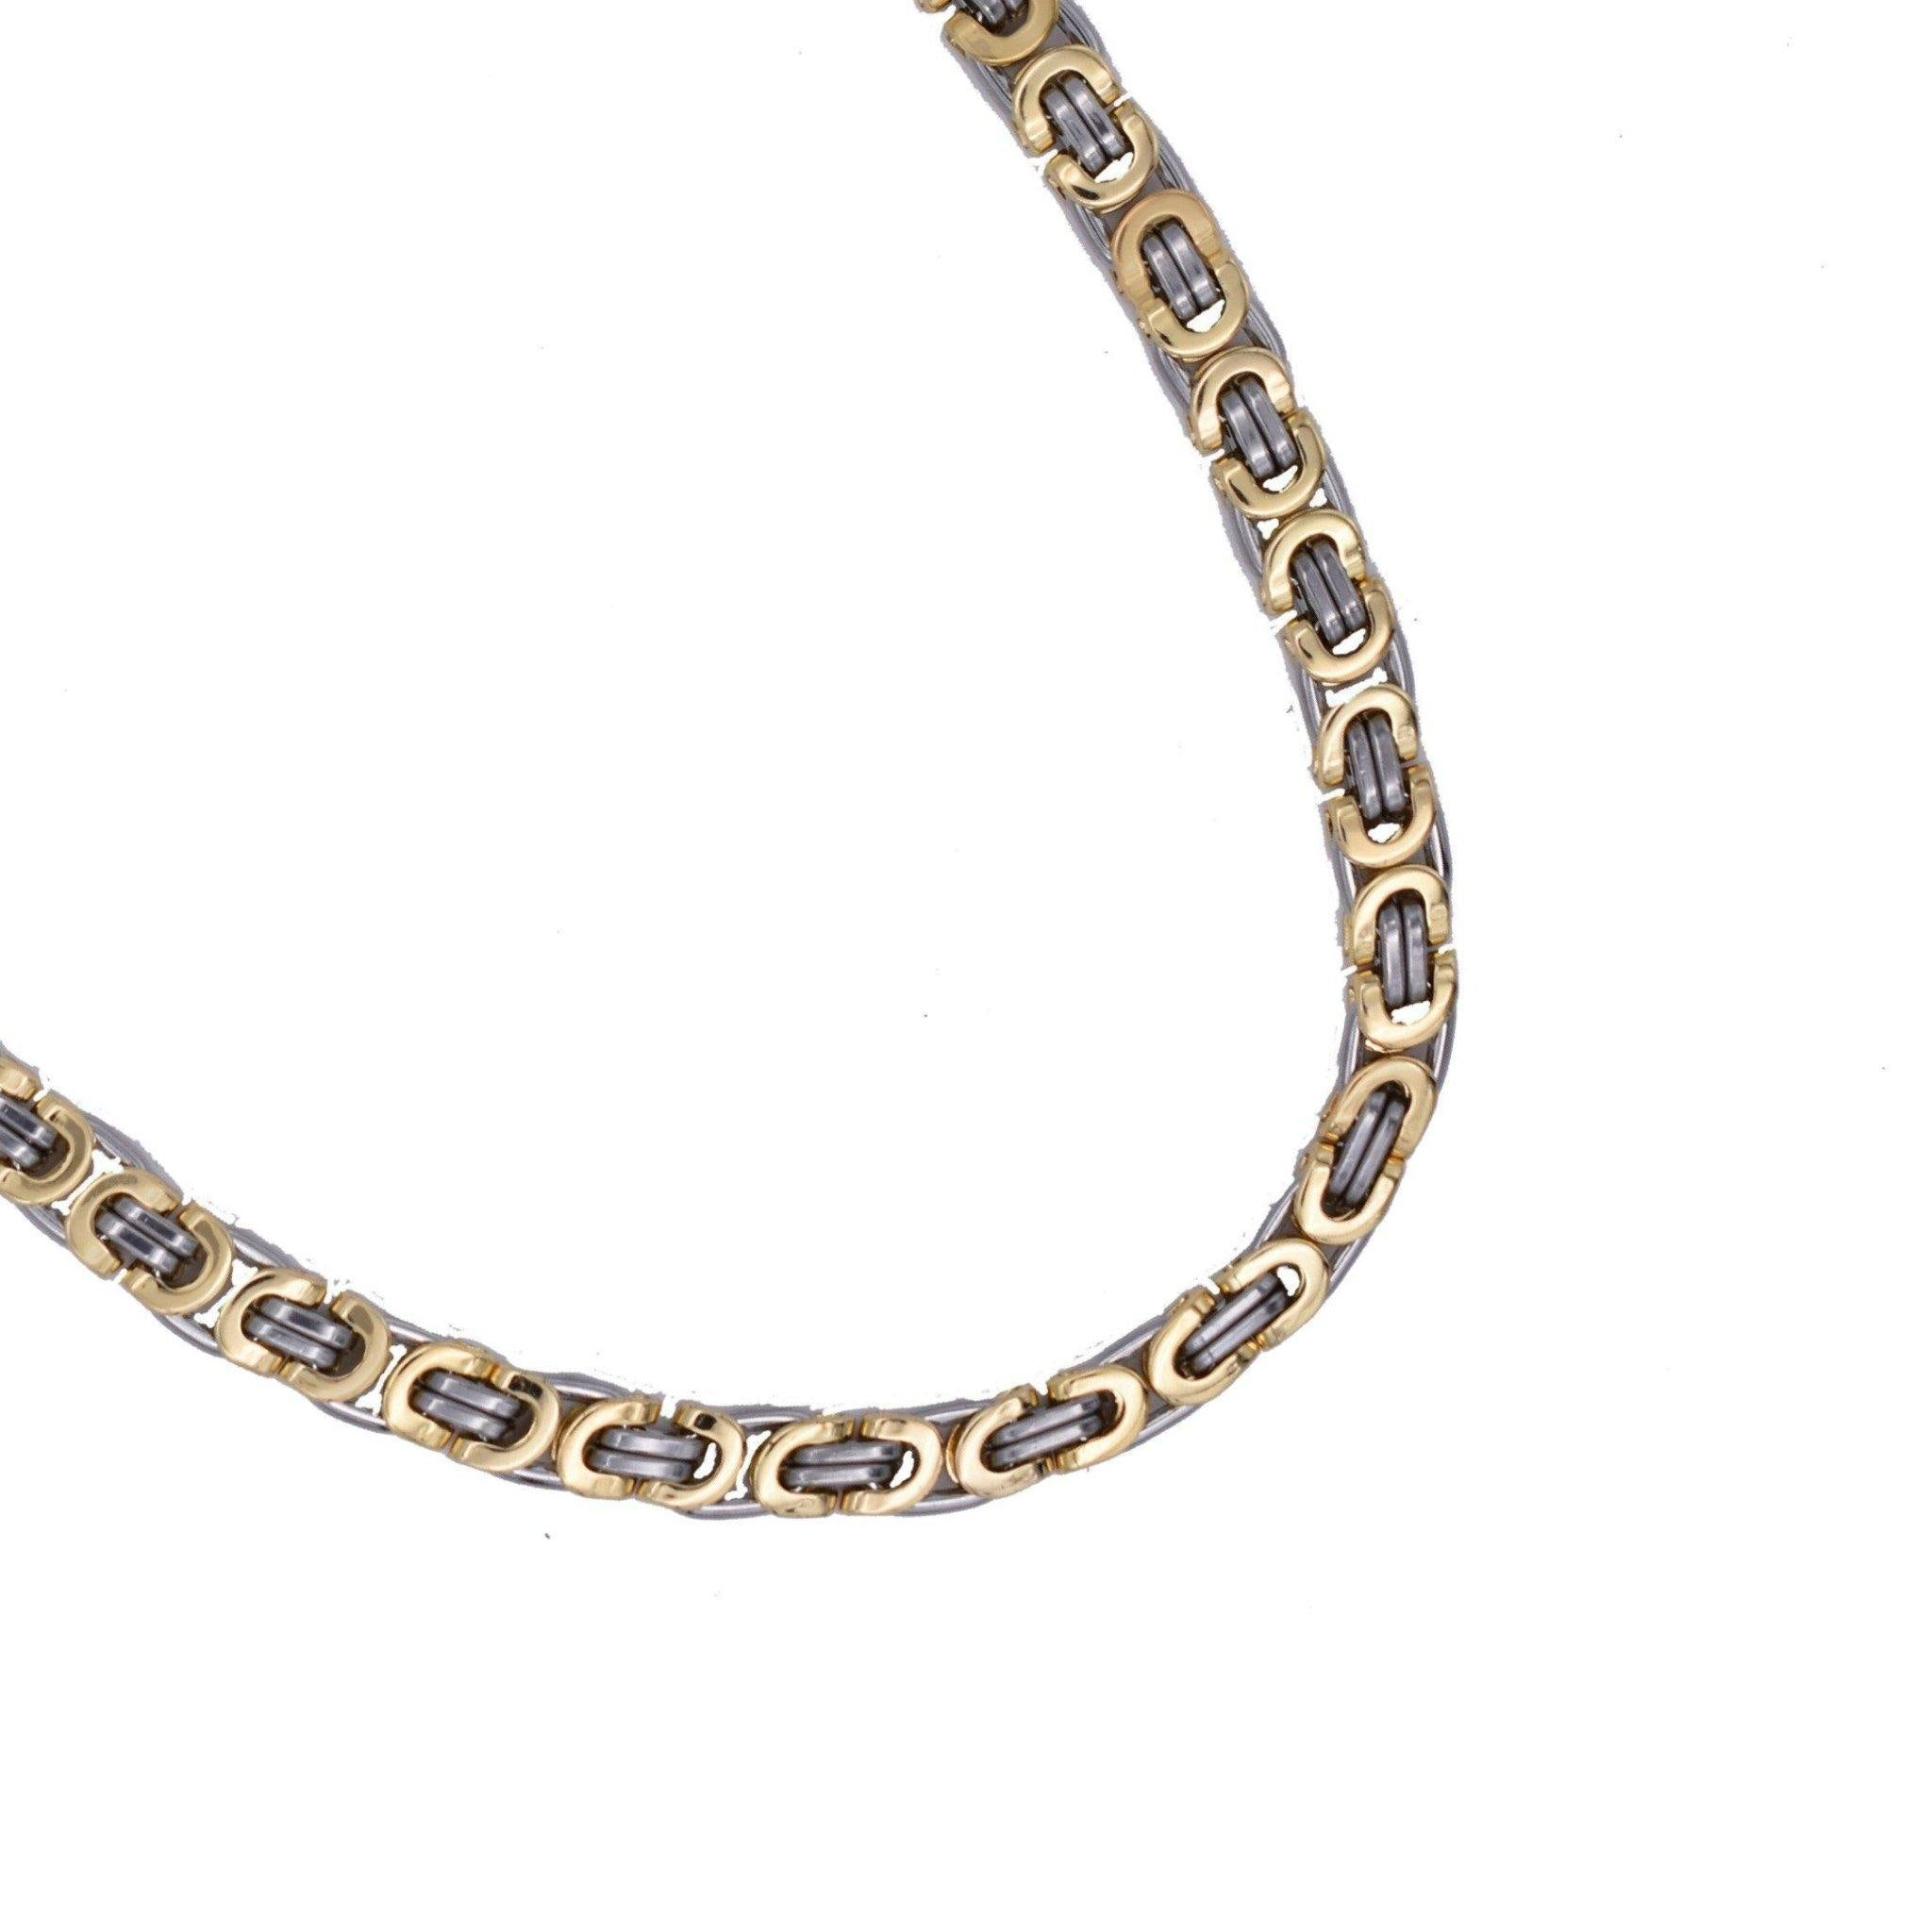 Dior Chain Necklace - Taylor Adorn